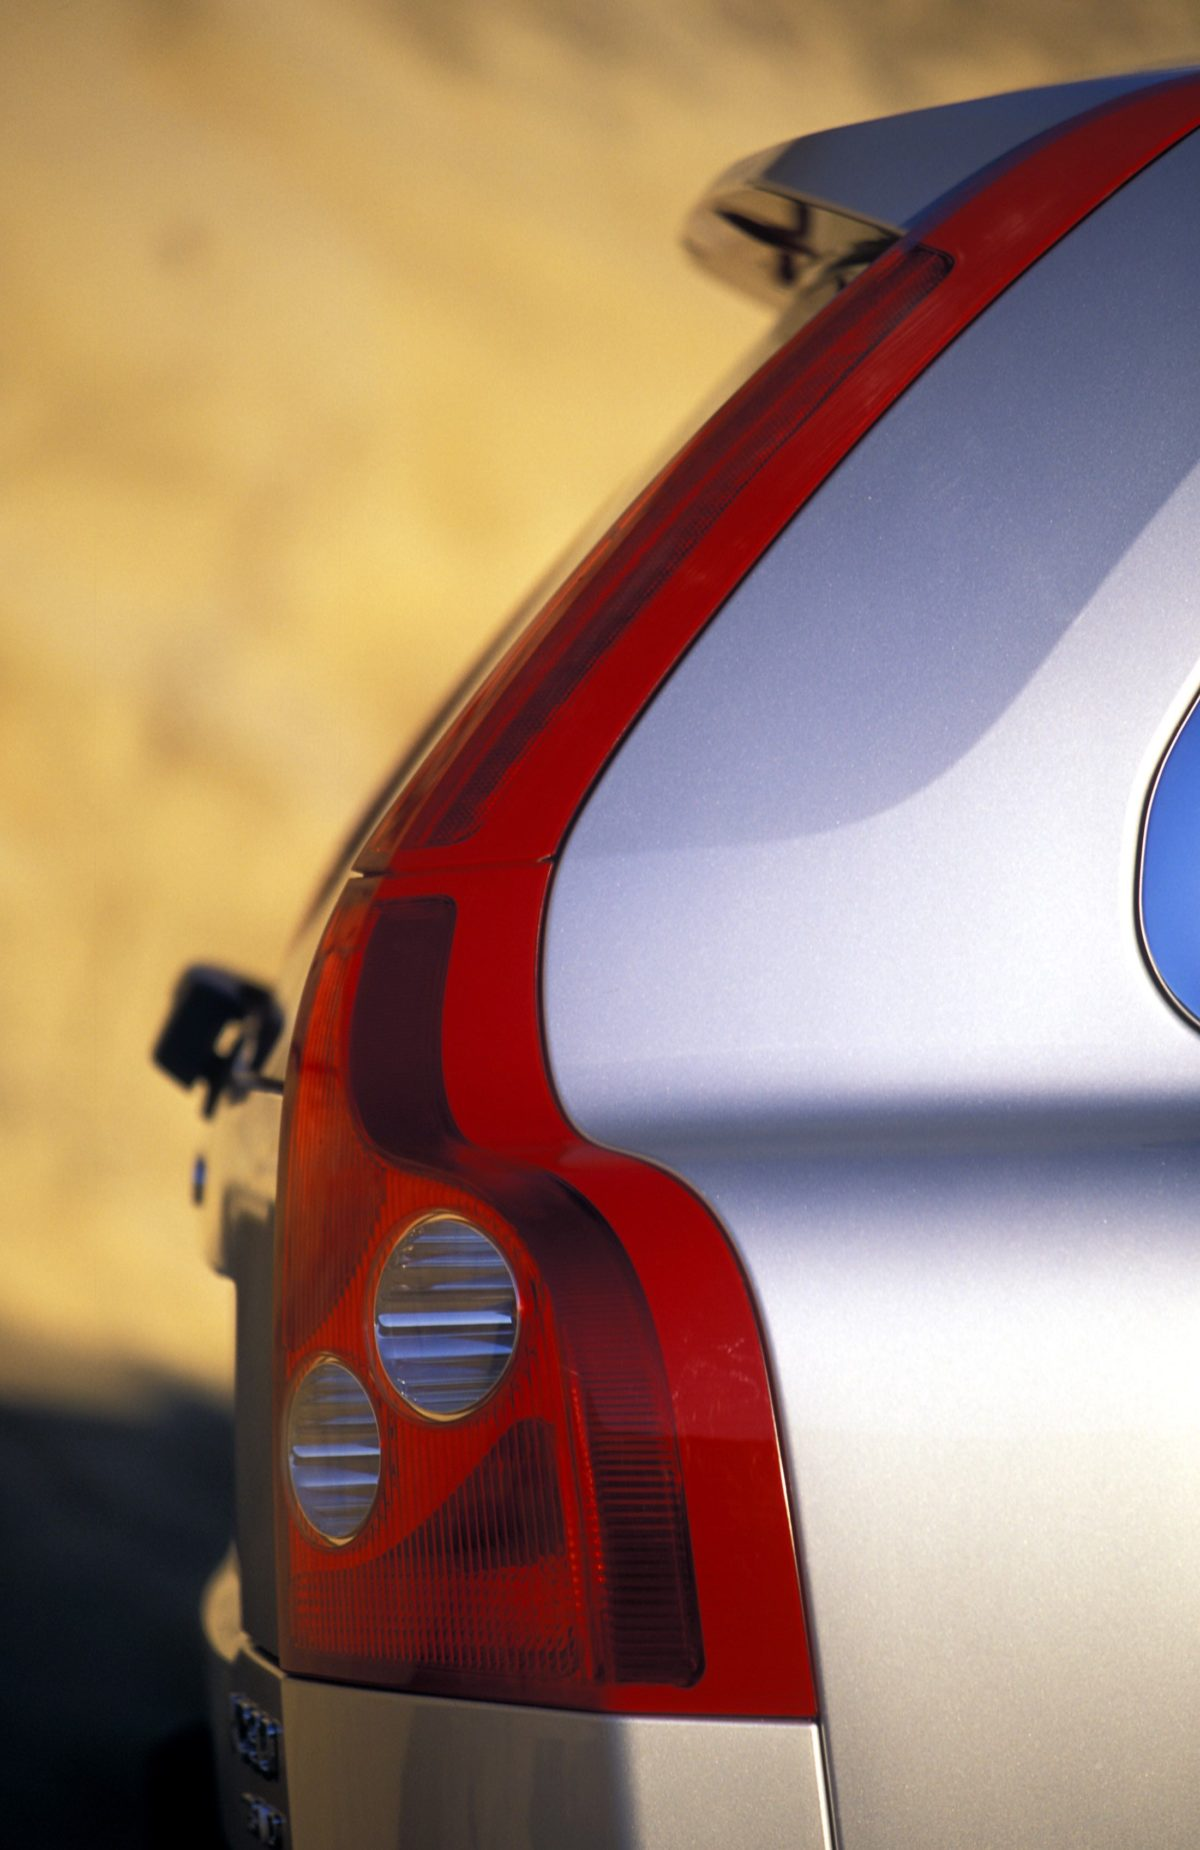 Volvo XC90 First Generation -  taillight, XC90